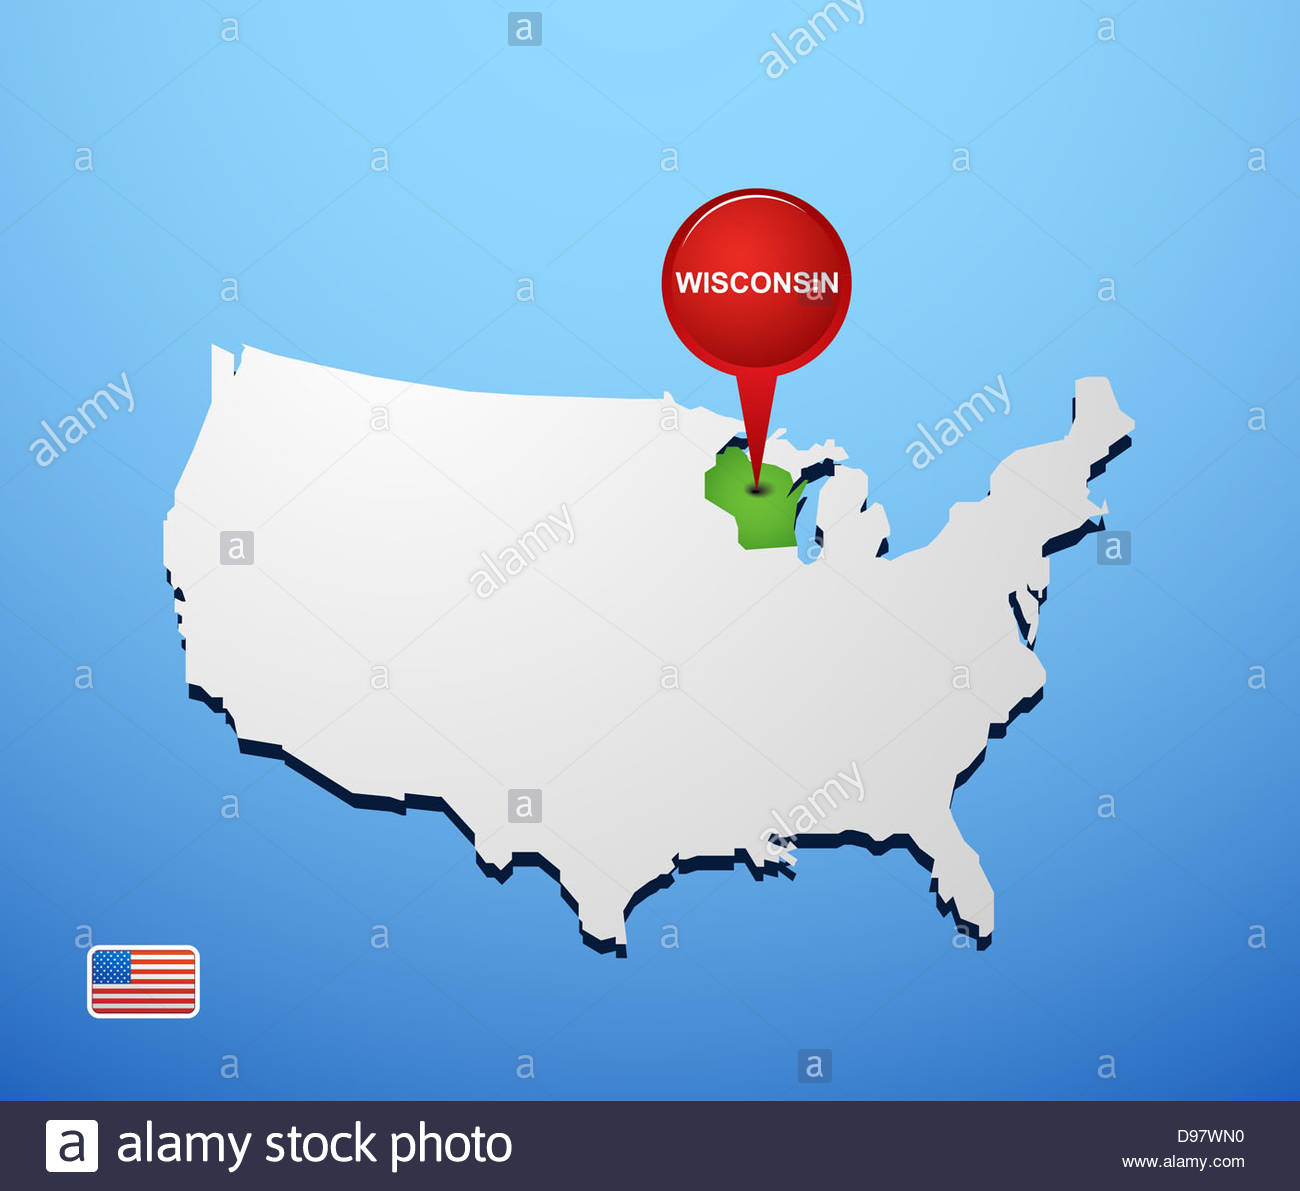 Wisconsin on USA map Stock Photo: 57336860 - Alamy on attleboro massachusetts on map, ann arbor michigan on map, bozeman montana on map, kenosha cowi map, kenosha wi, kenosha county map, huntsville alabama on map, portsmouth virginia on map, southeast wisconsin map, fargo north dakota on map, wisconsin county map, trout lake wisconsin map, everett washington on map, kenosha wisc, terre haute indiana on map, city of kenosha wisconsin map,